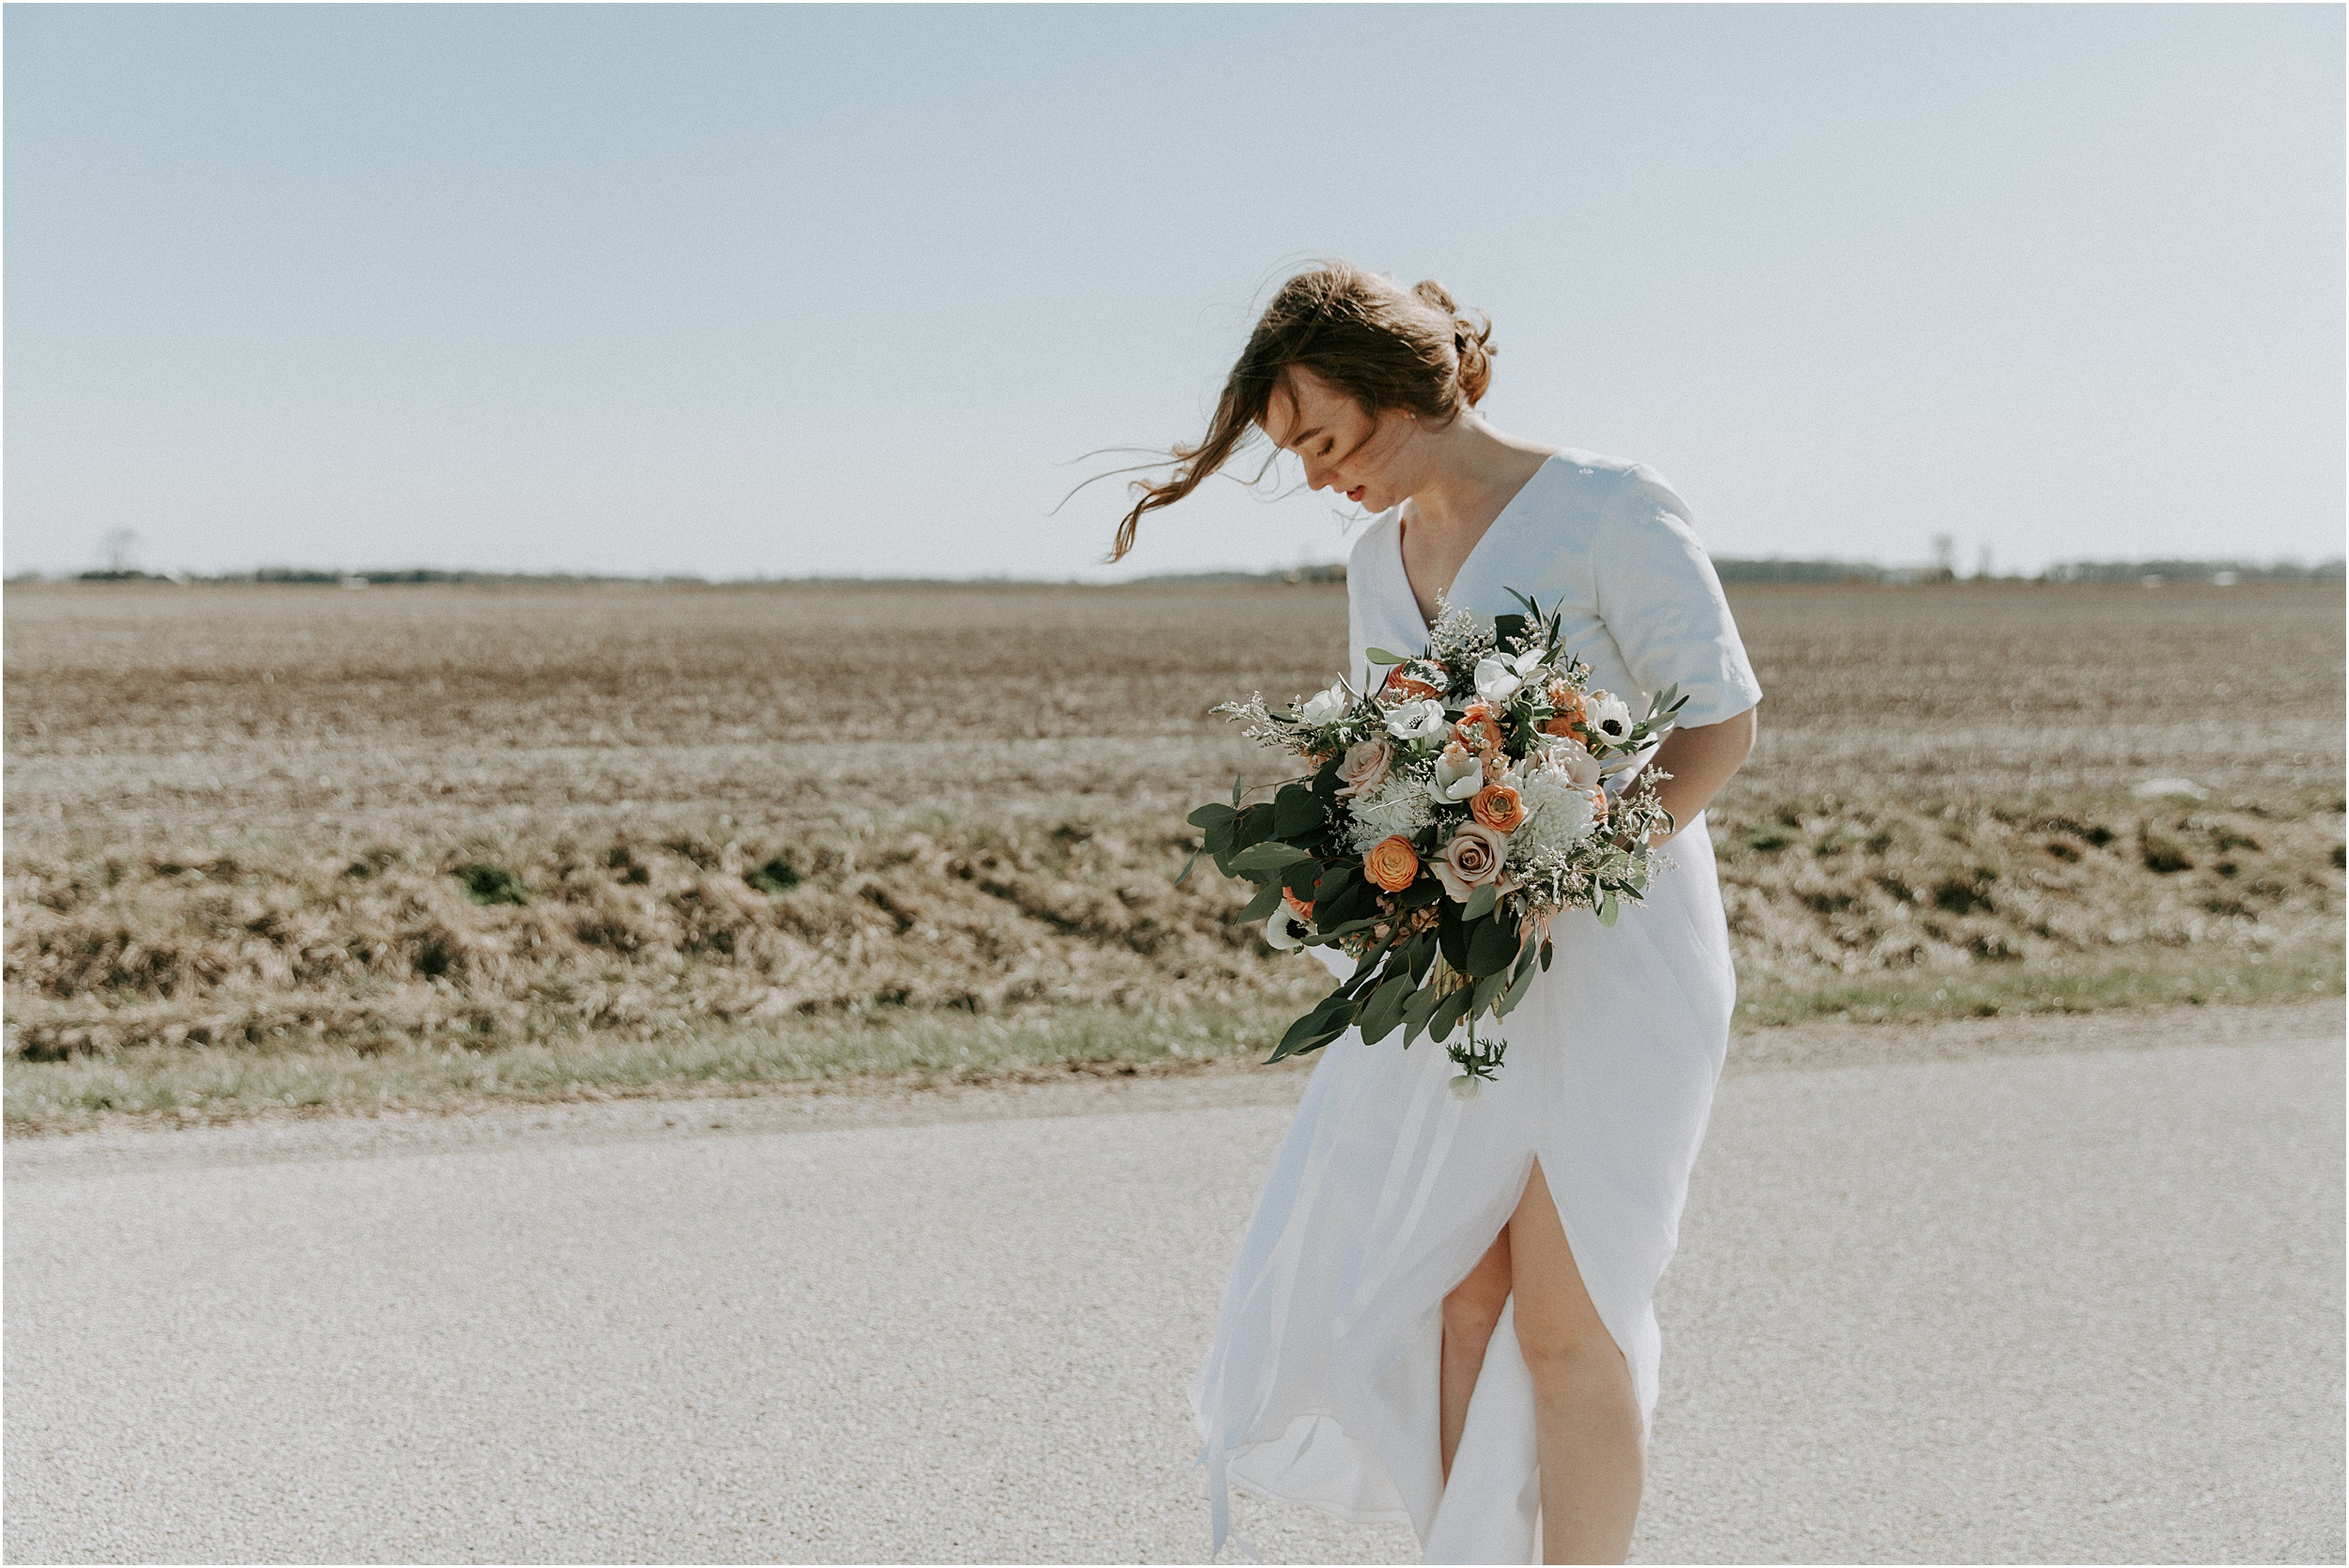 willow_creek_farm_champaign_wedding_wright_photographs_street_0407.JPG